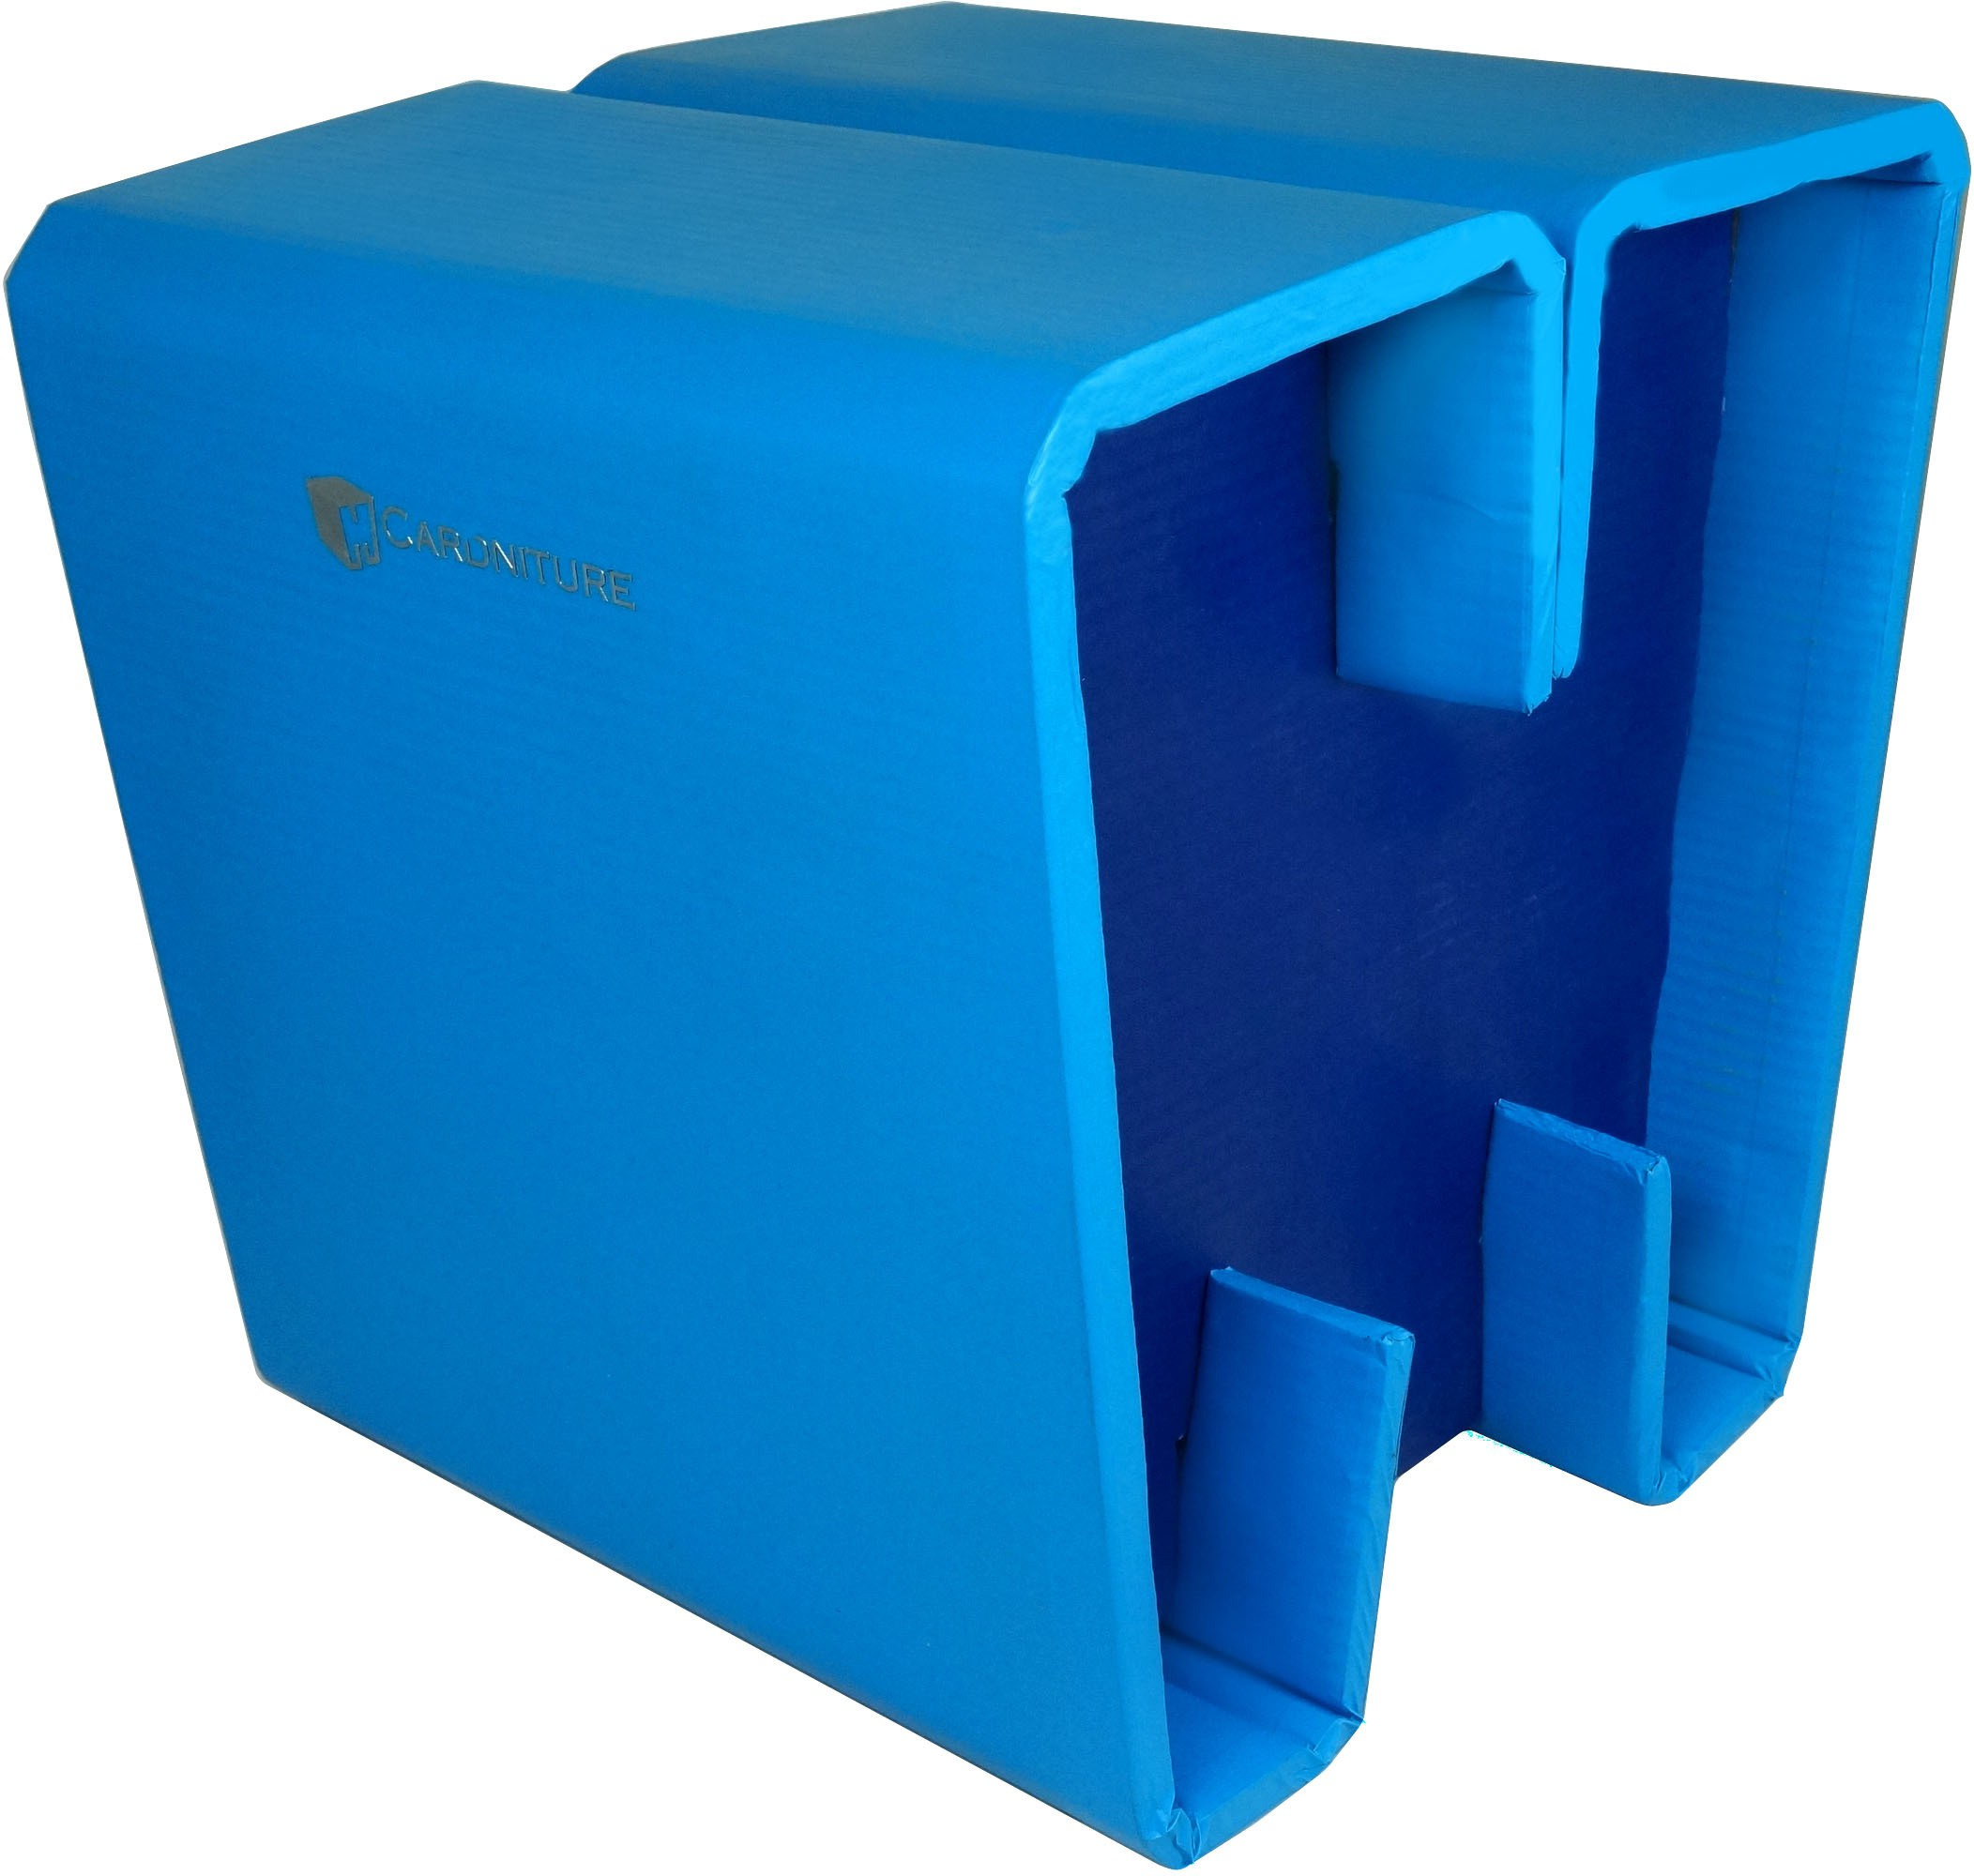 View Cardniture ZING Living & Bedroom Stool(Blue) Furniture (Cardniture)